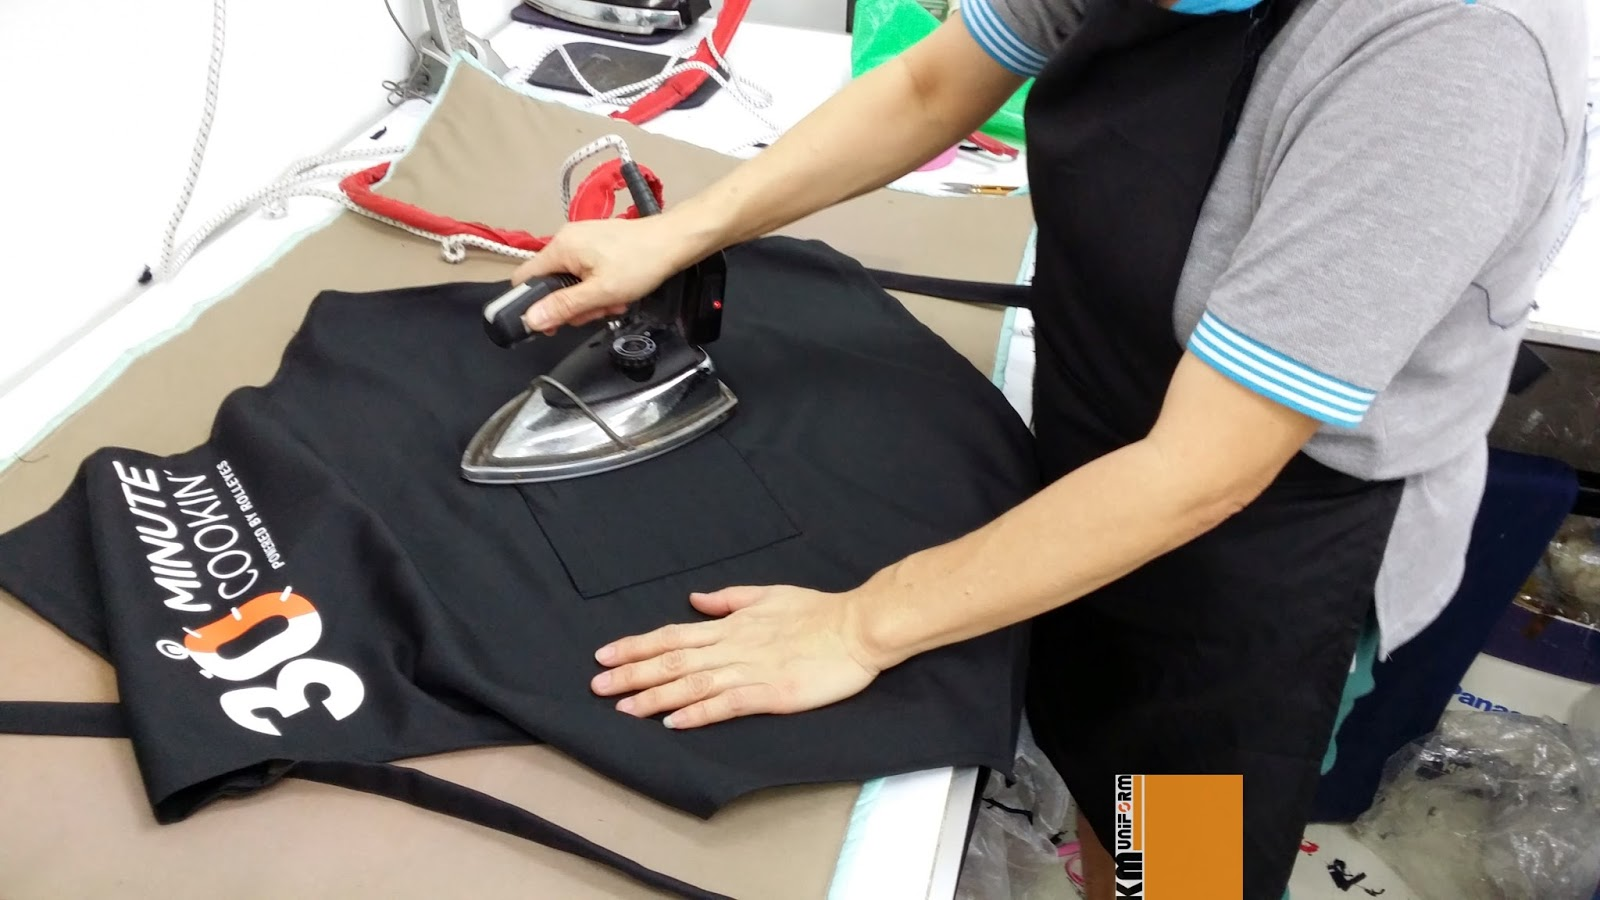 Design t shirt johor - Km Uniform Sdn Bhd Is An Apparel Manufacturer Distributor That Specialize In Tee Shirt Collar Tee Uniform Manufacturing We Provide All Range Of Colours